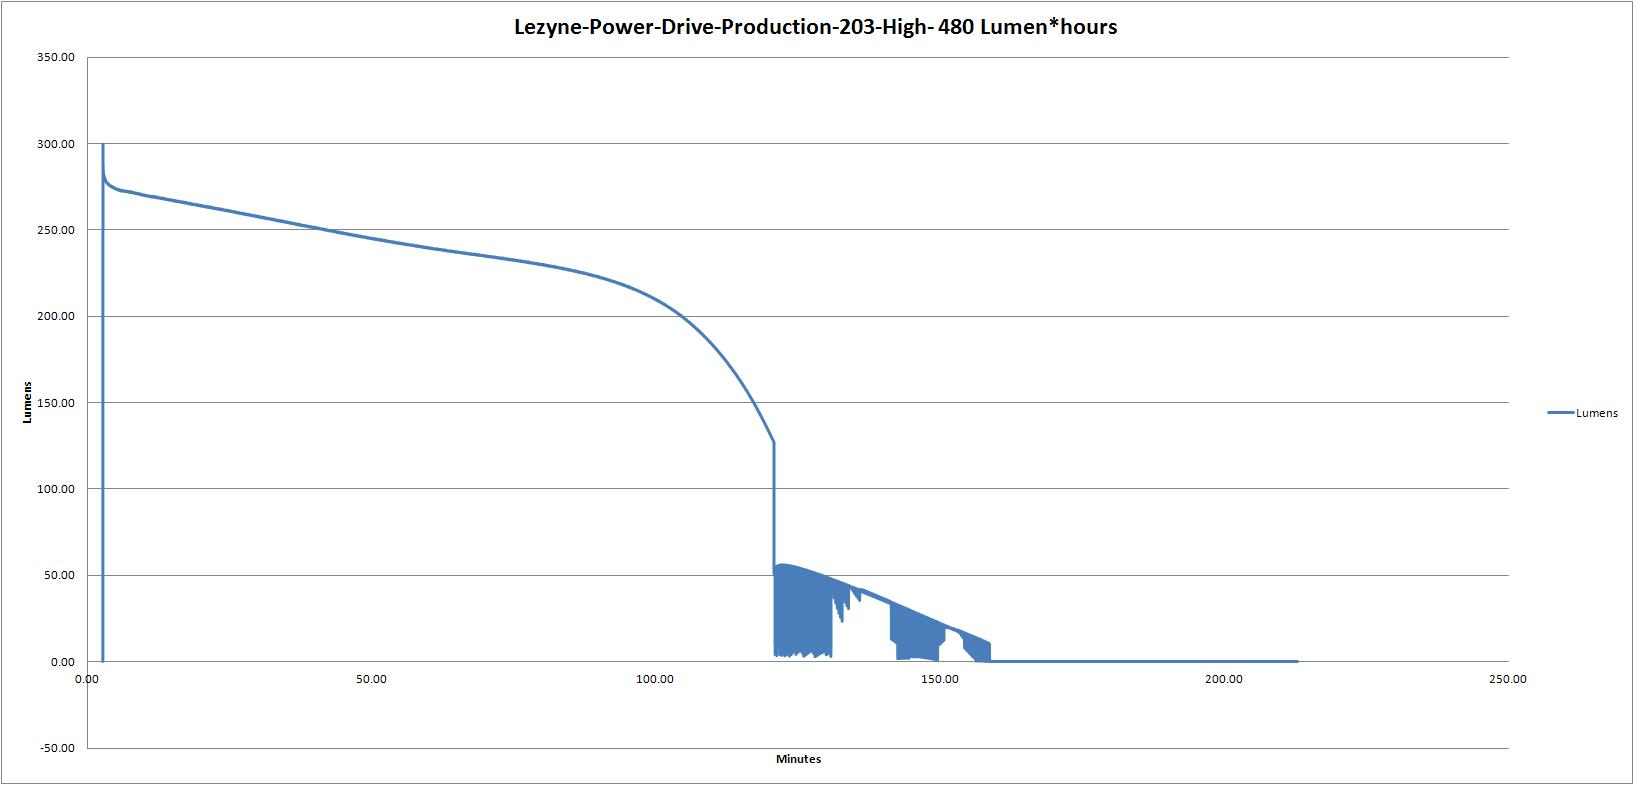 Lezyne-Power-Drive-Production-203-High